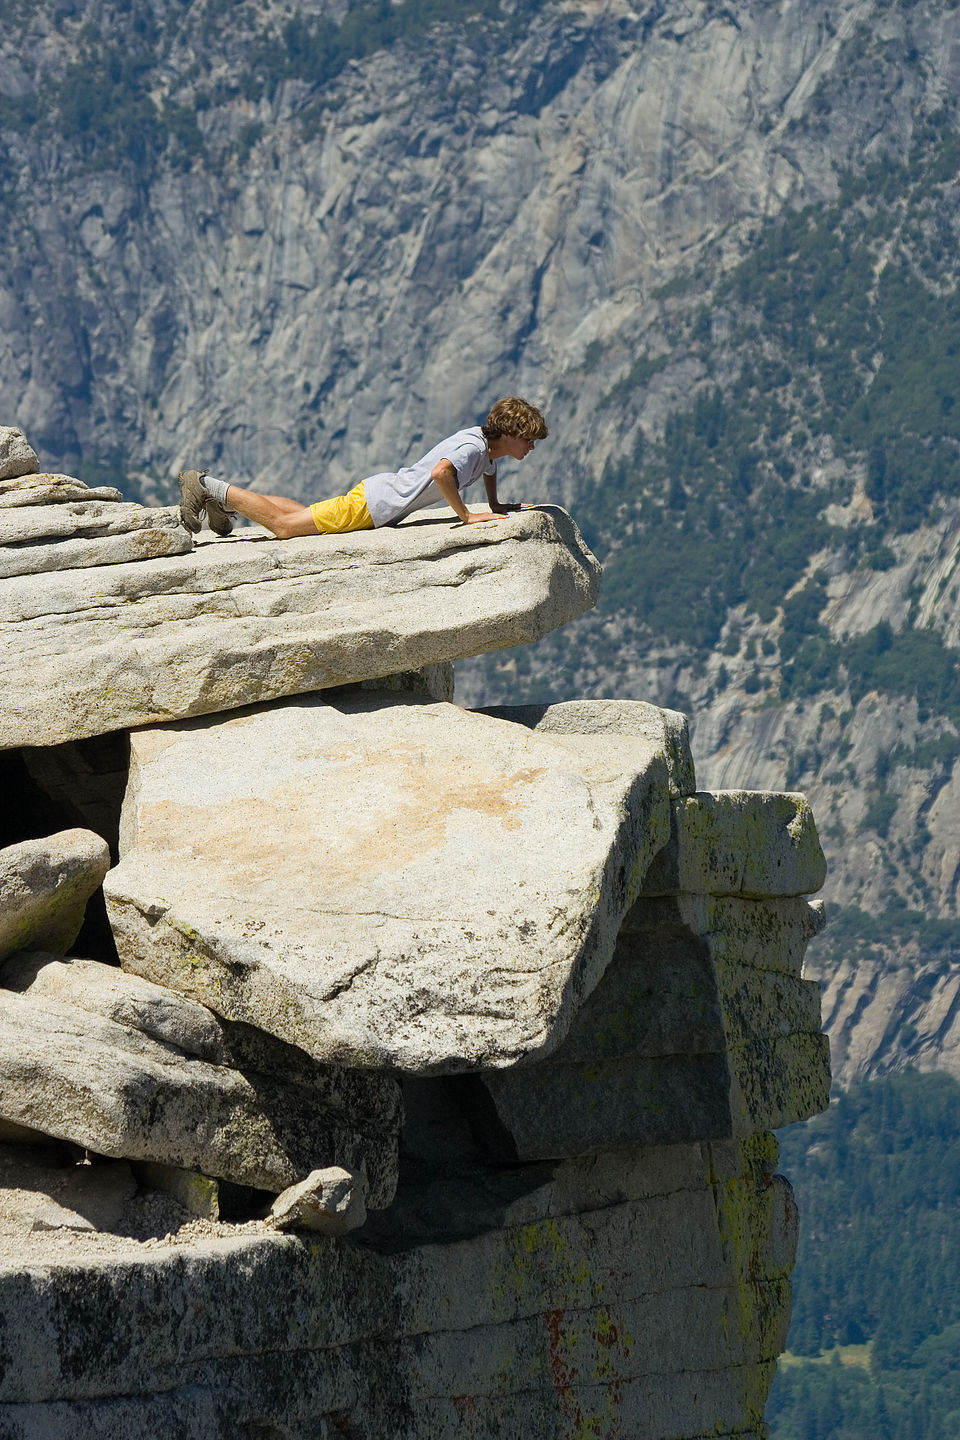 Tommy peering over Half Dome ledge - AJG